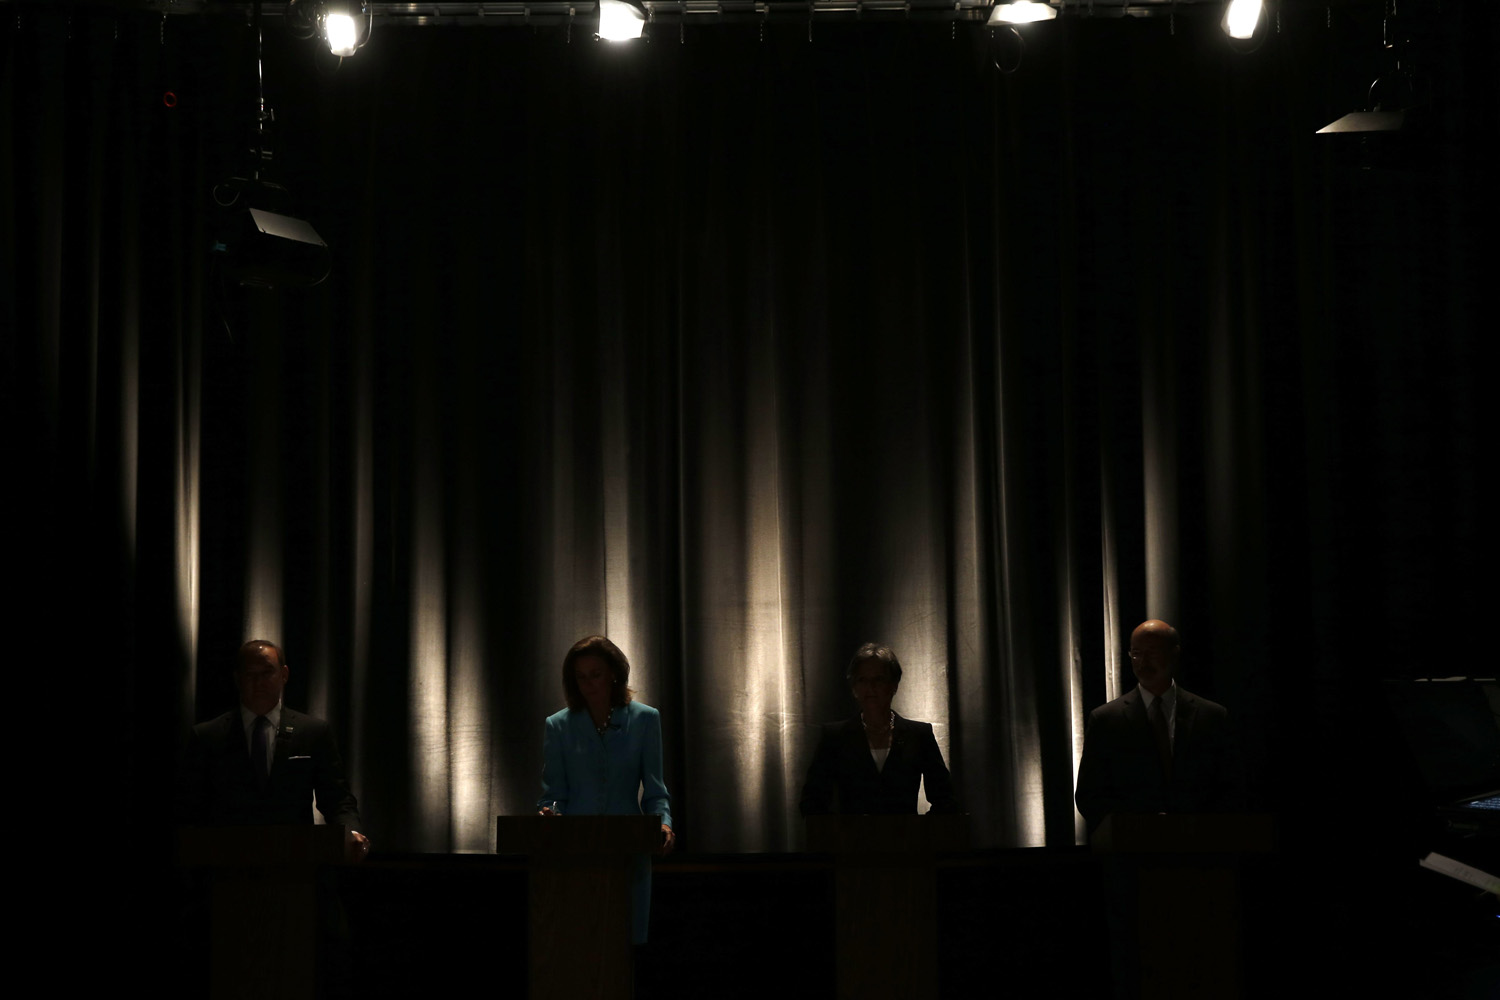 May 8, 2014, State treasurer Rob McCord, from left, former state environmental protection secretary Katie McGinty, U.S. Rep. Allyson Schwartz and businessman Tom Wolf wait for the start of the  Pennsylvania Democratic Gubernatorial Primary Debate, in Philadelphia.